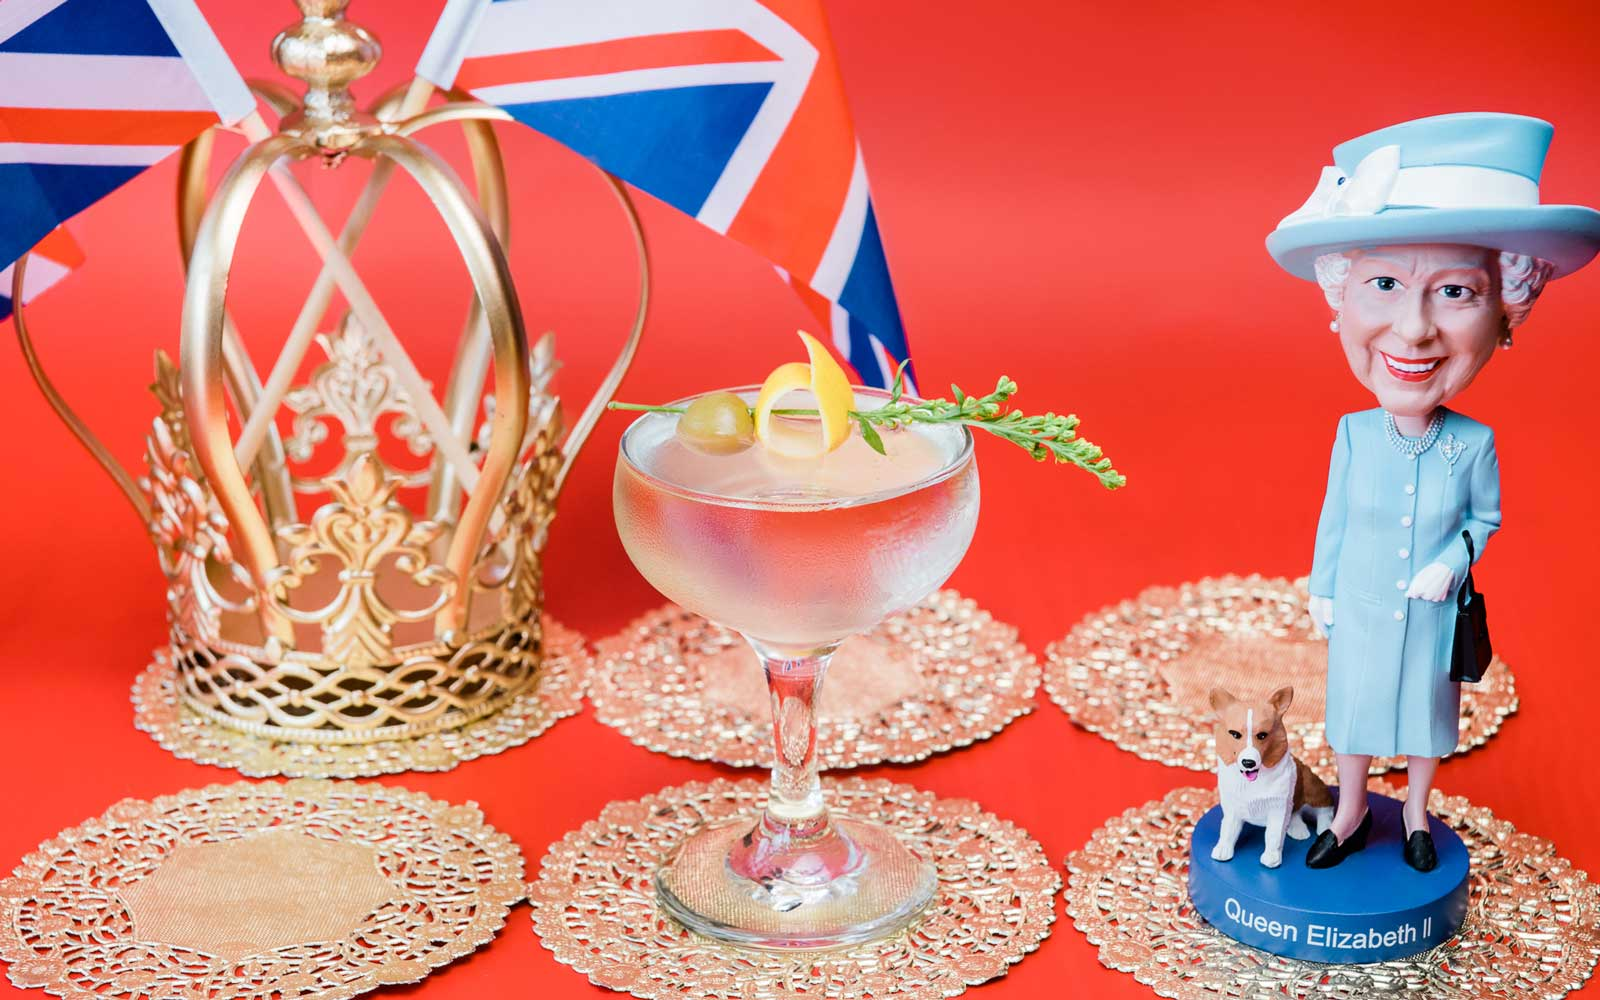 'God Save the Queen' is one of 11 original cocktails at Drink Company's Royal Wedding PUB, running May 4-20